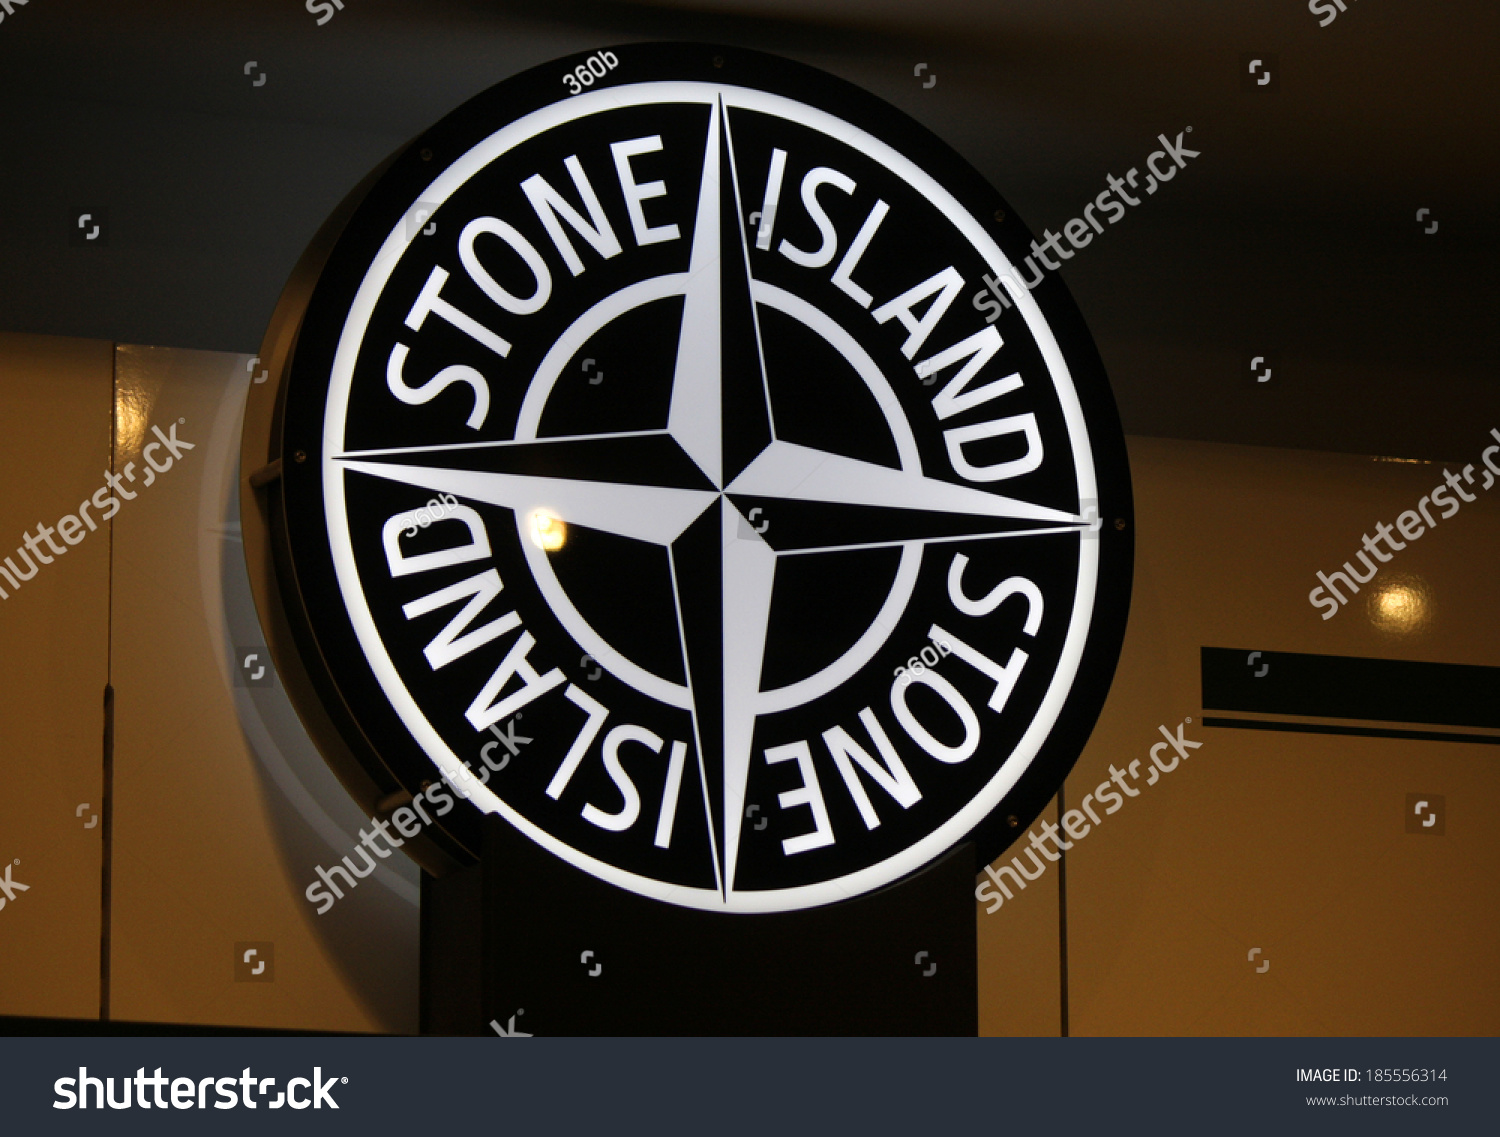 february 26 2014 berlin the logo of the brand stone island berlin stock photo 185556314. Black Bedroom Furniture Sets. Home Design Ideas